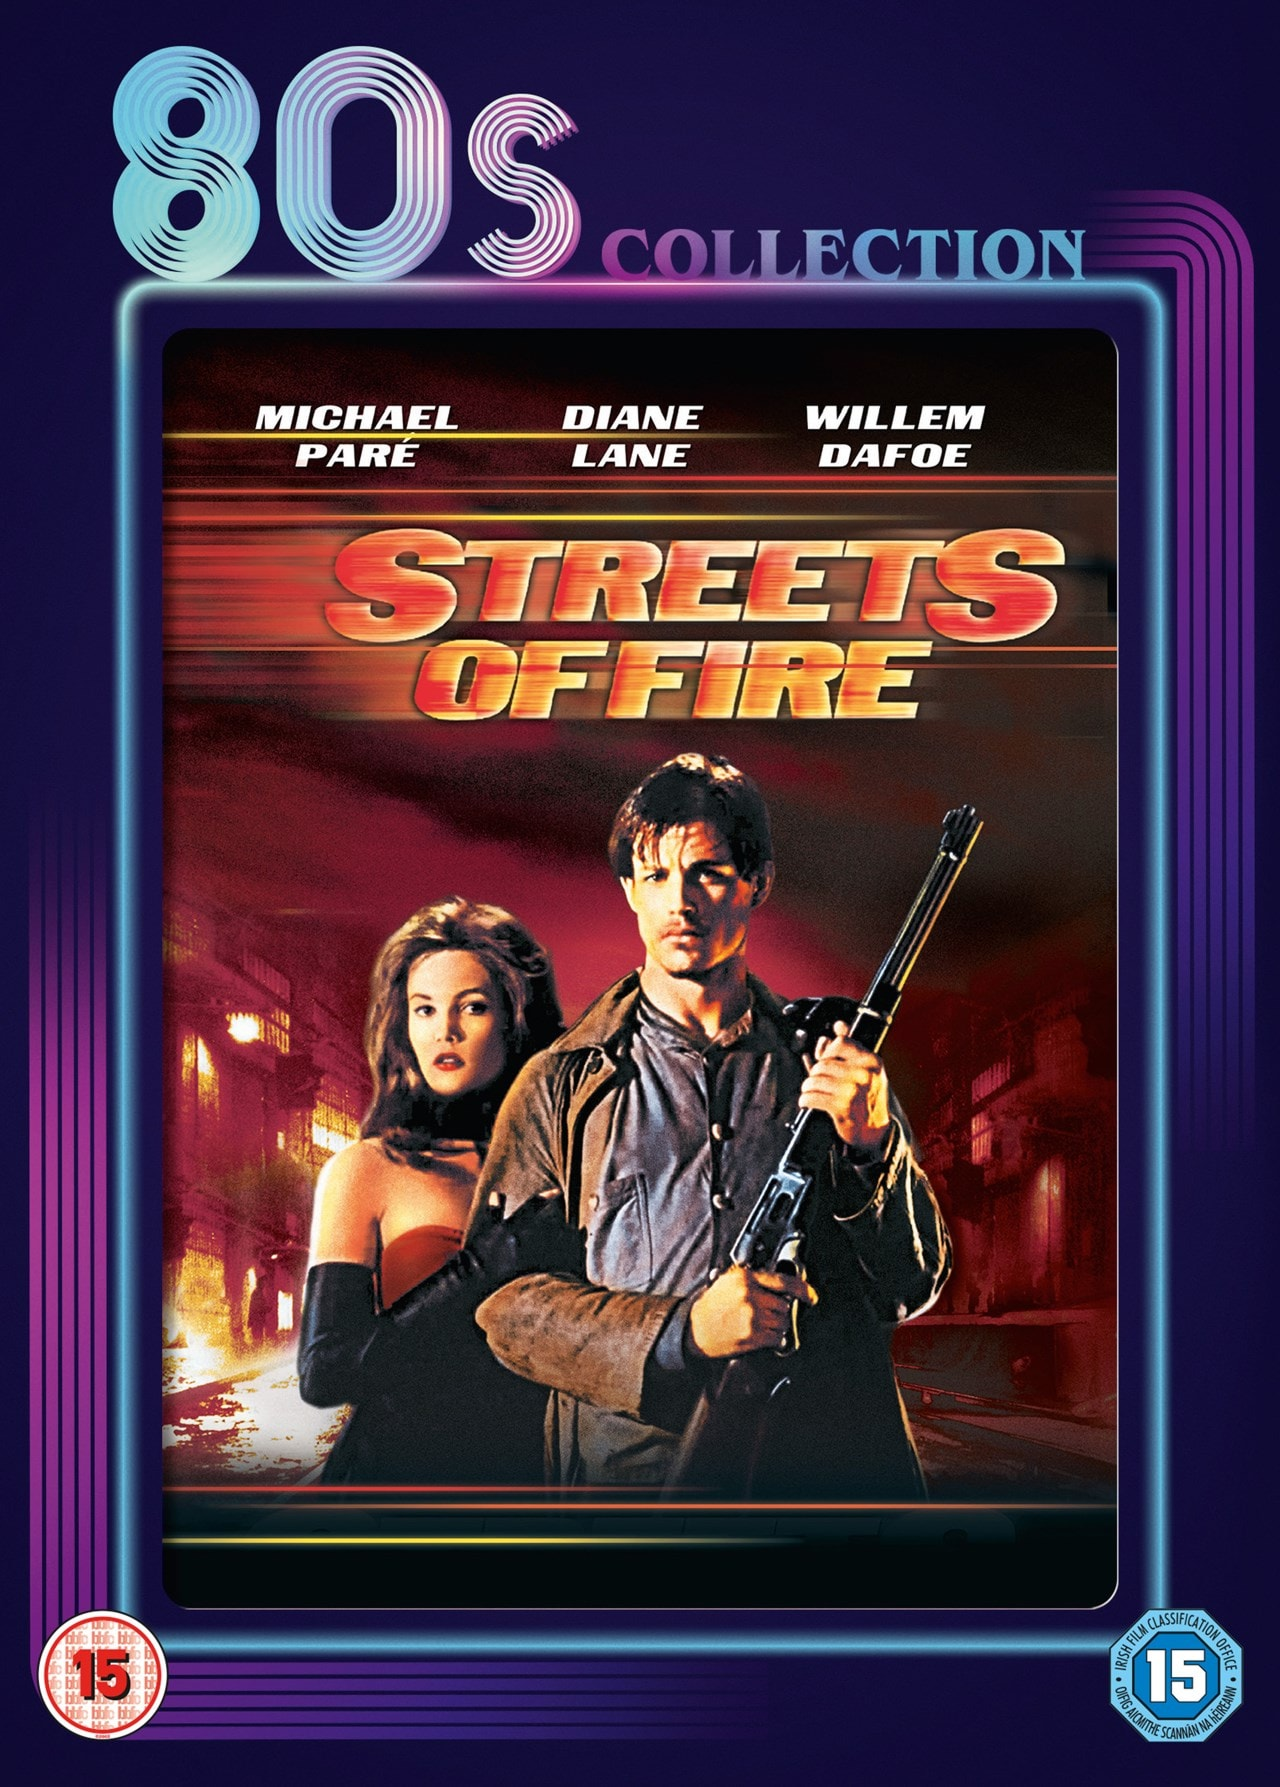 Streets of Fire - 80s Collection - 1